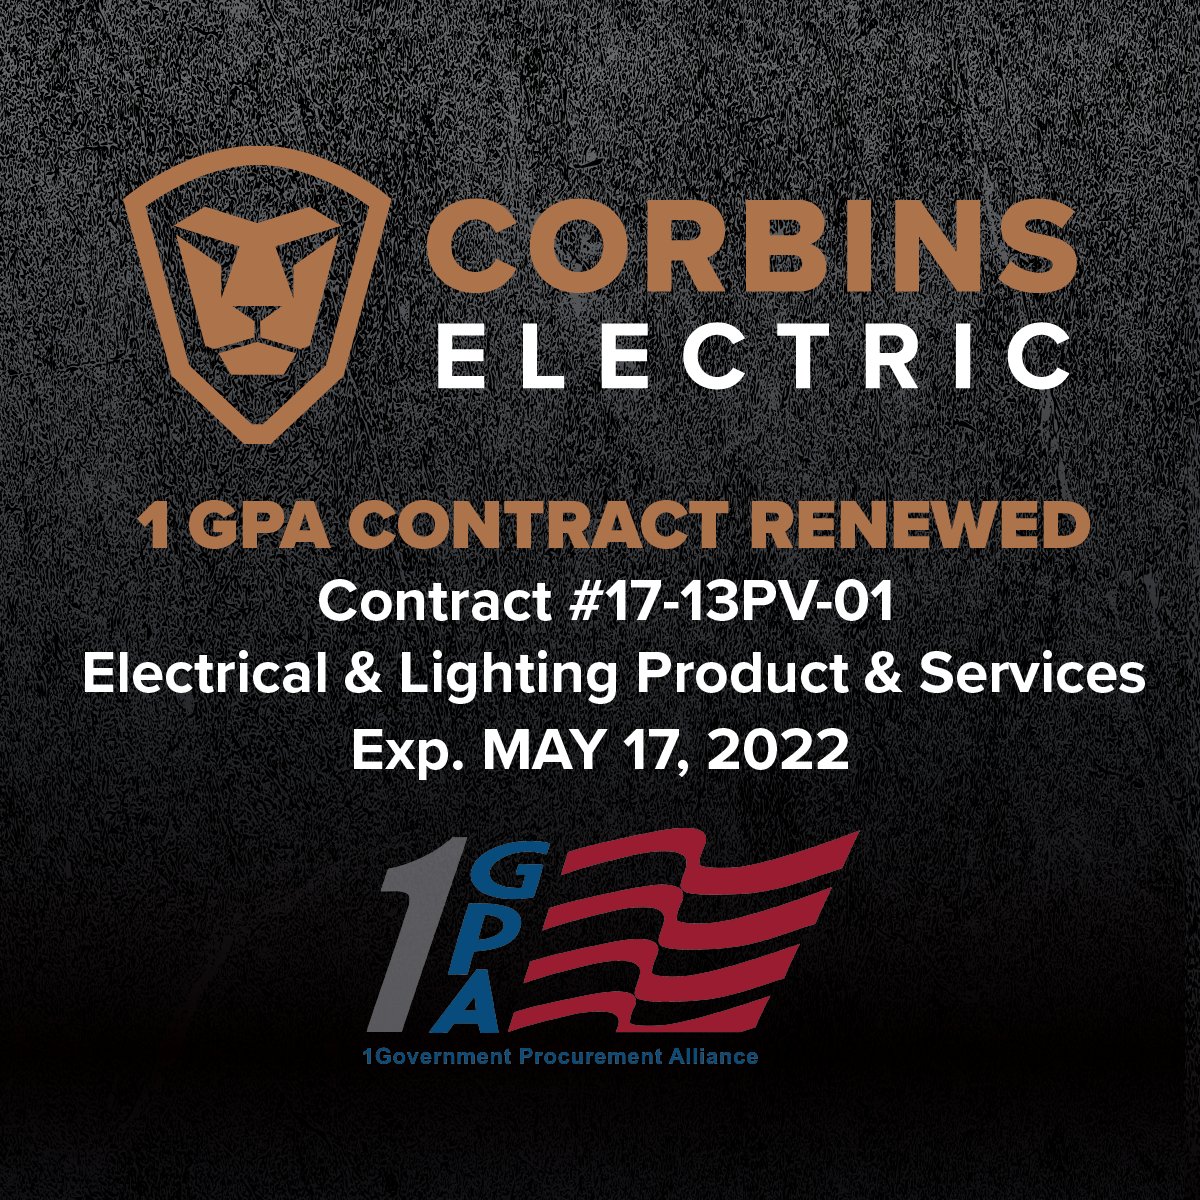 Corbins Electric 1 GPA Contract Has Been Extended